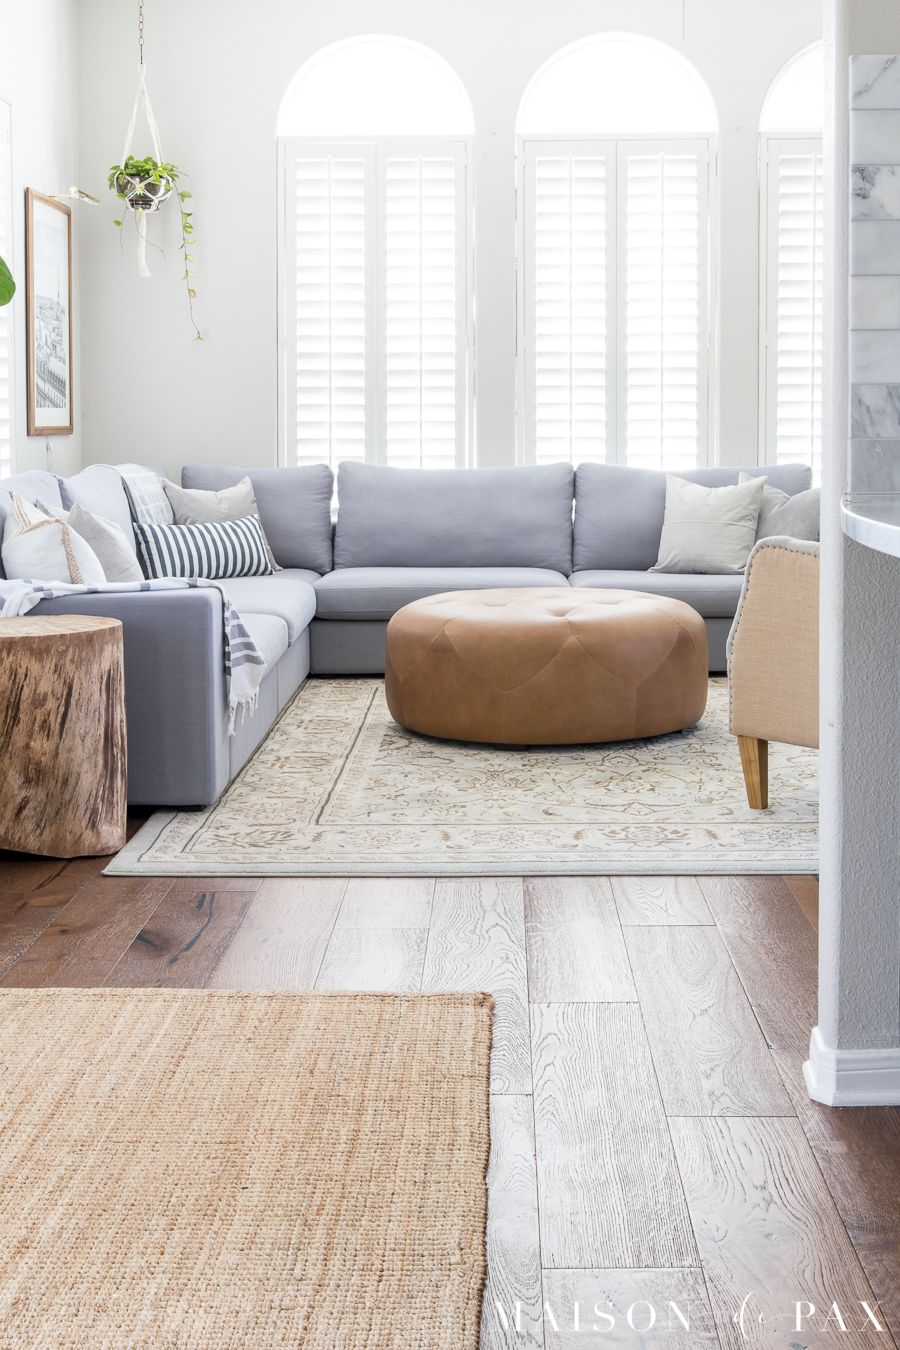 How to decorate a living room with a sectional - Maison de ...